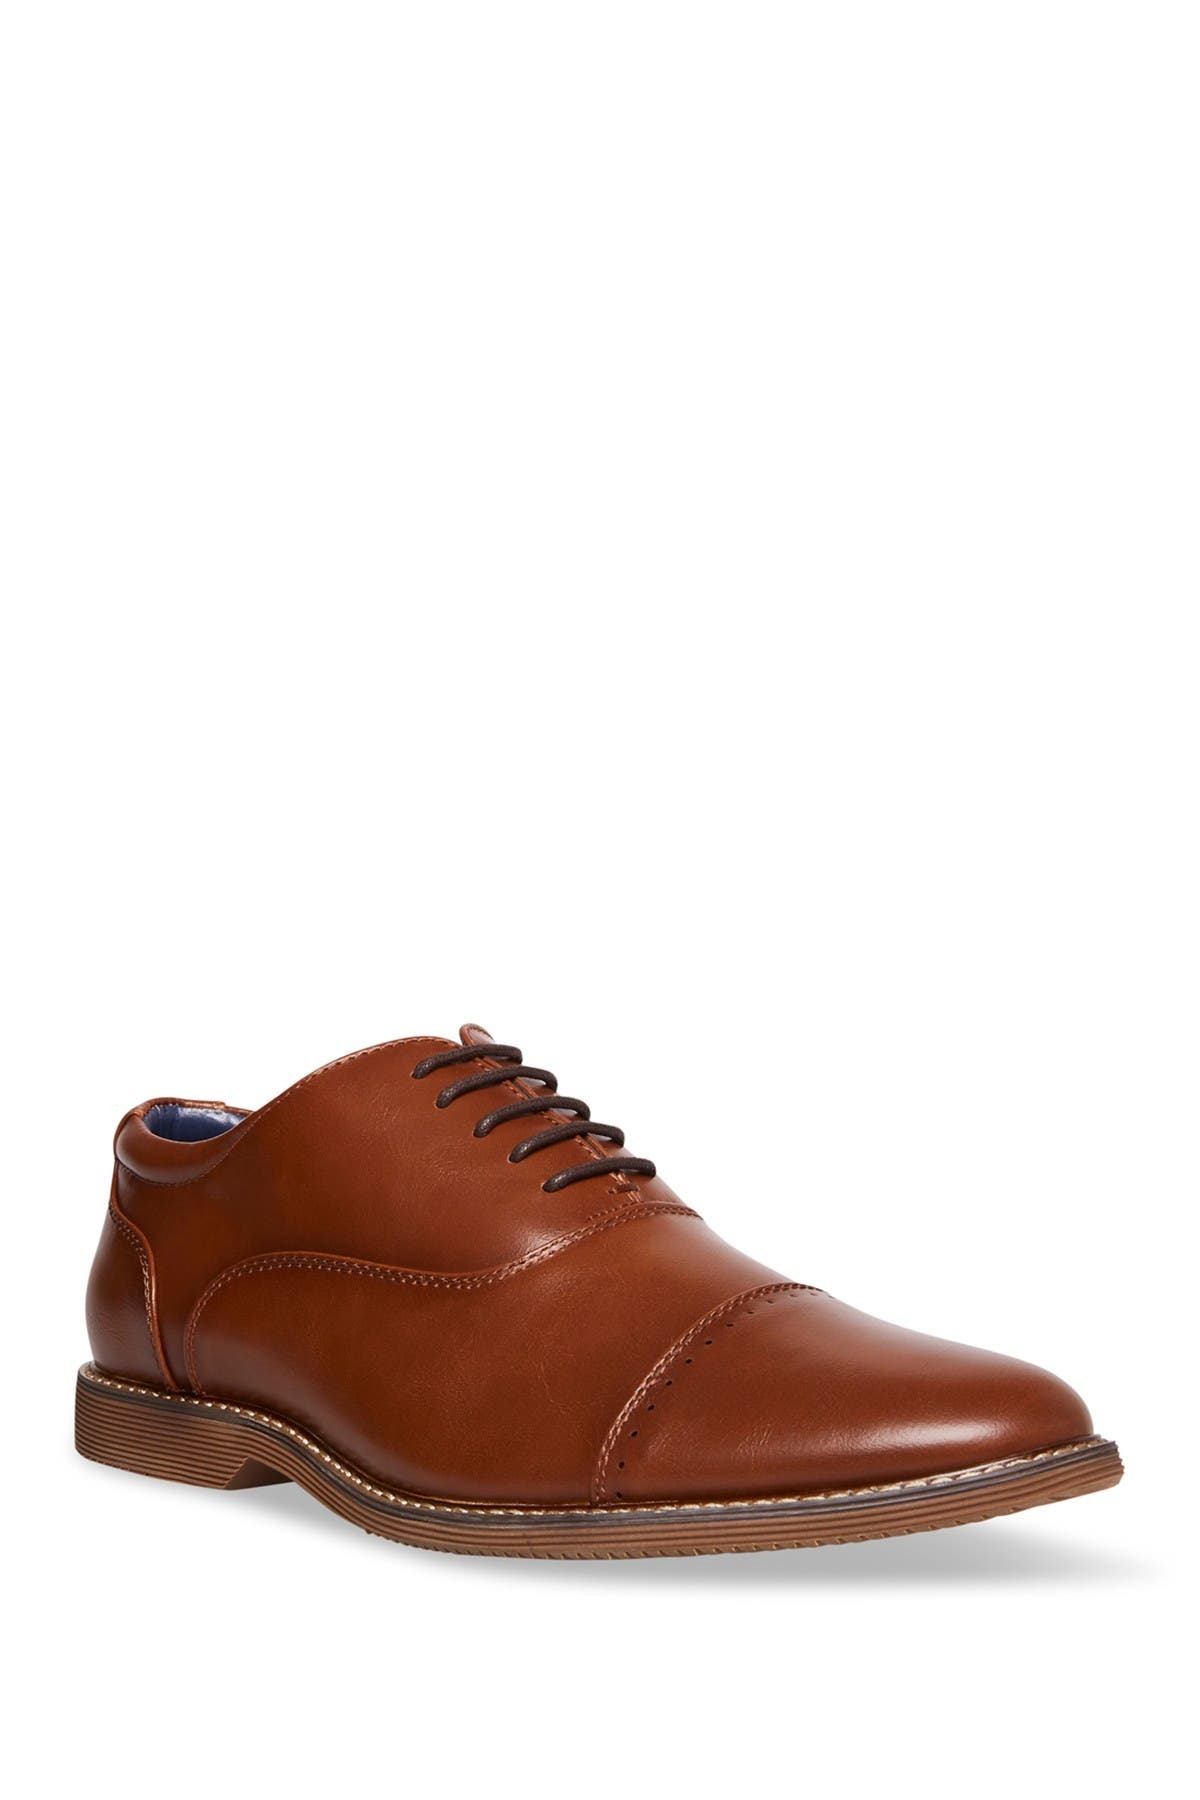 Image of Steve Madden Oracle Cap Toe Oxford